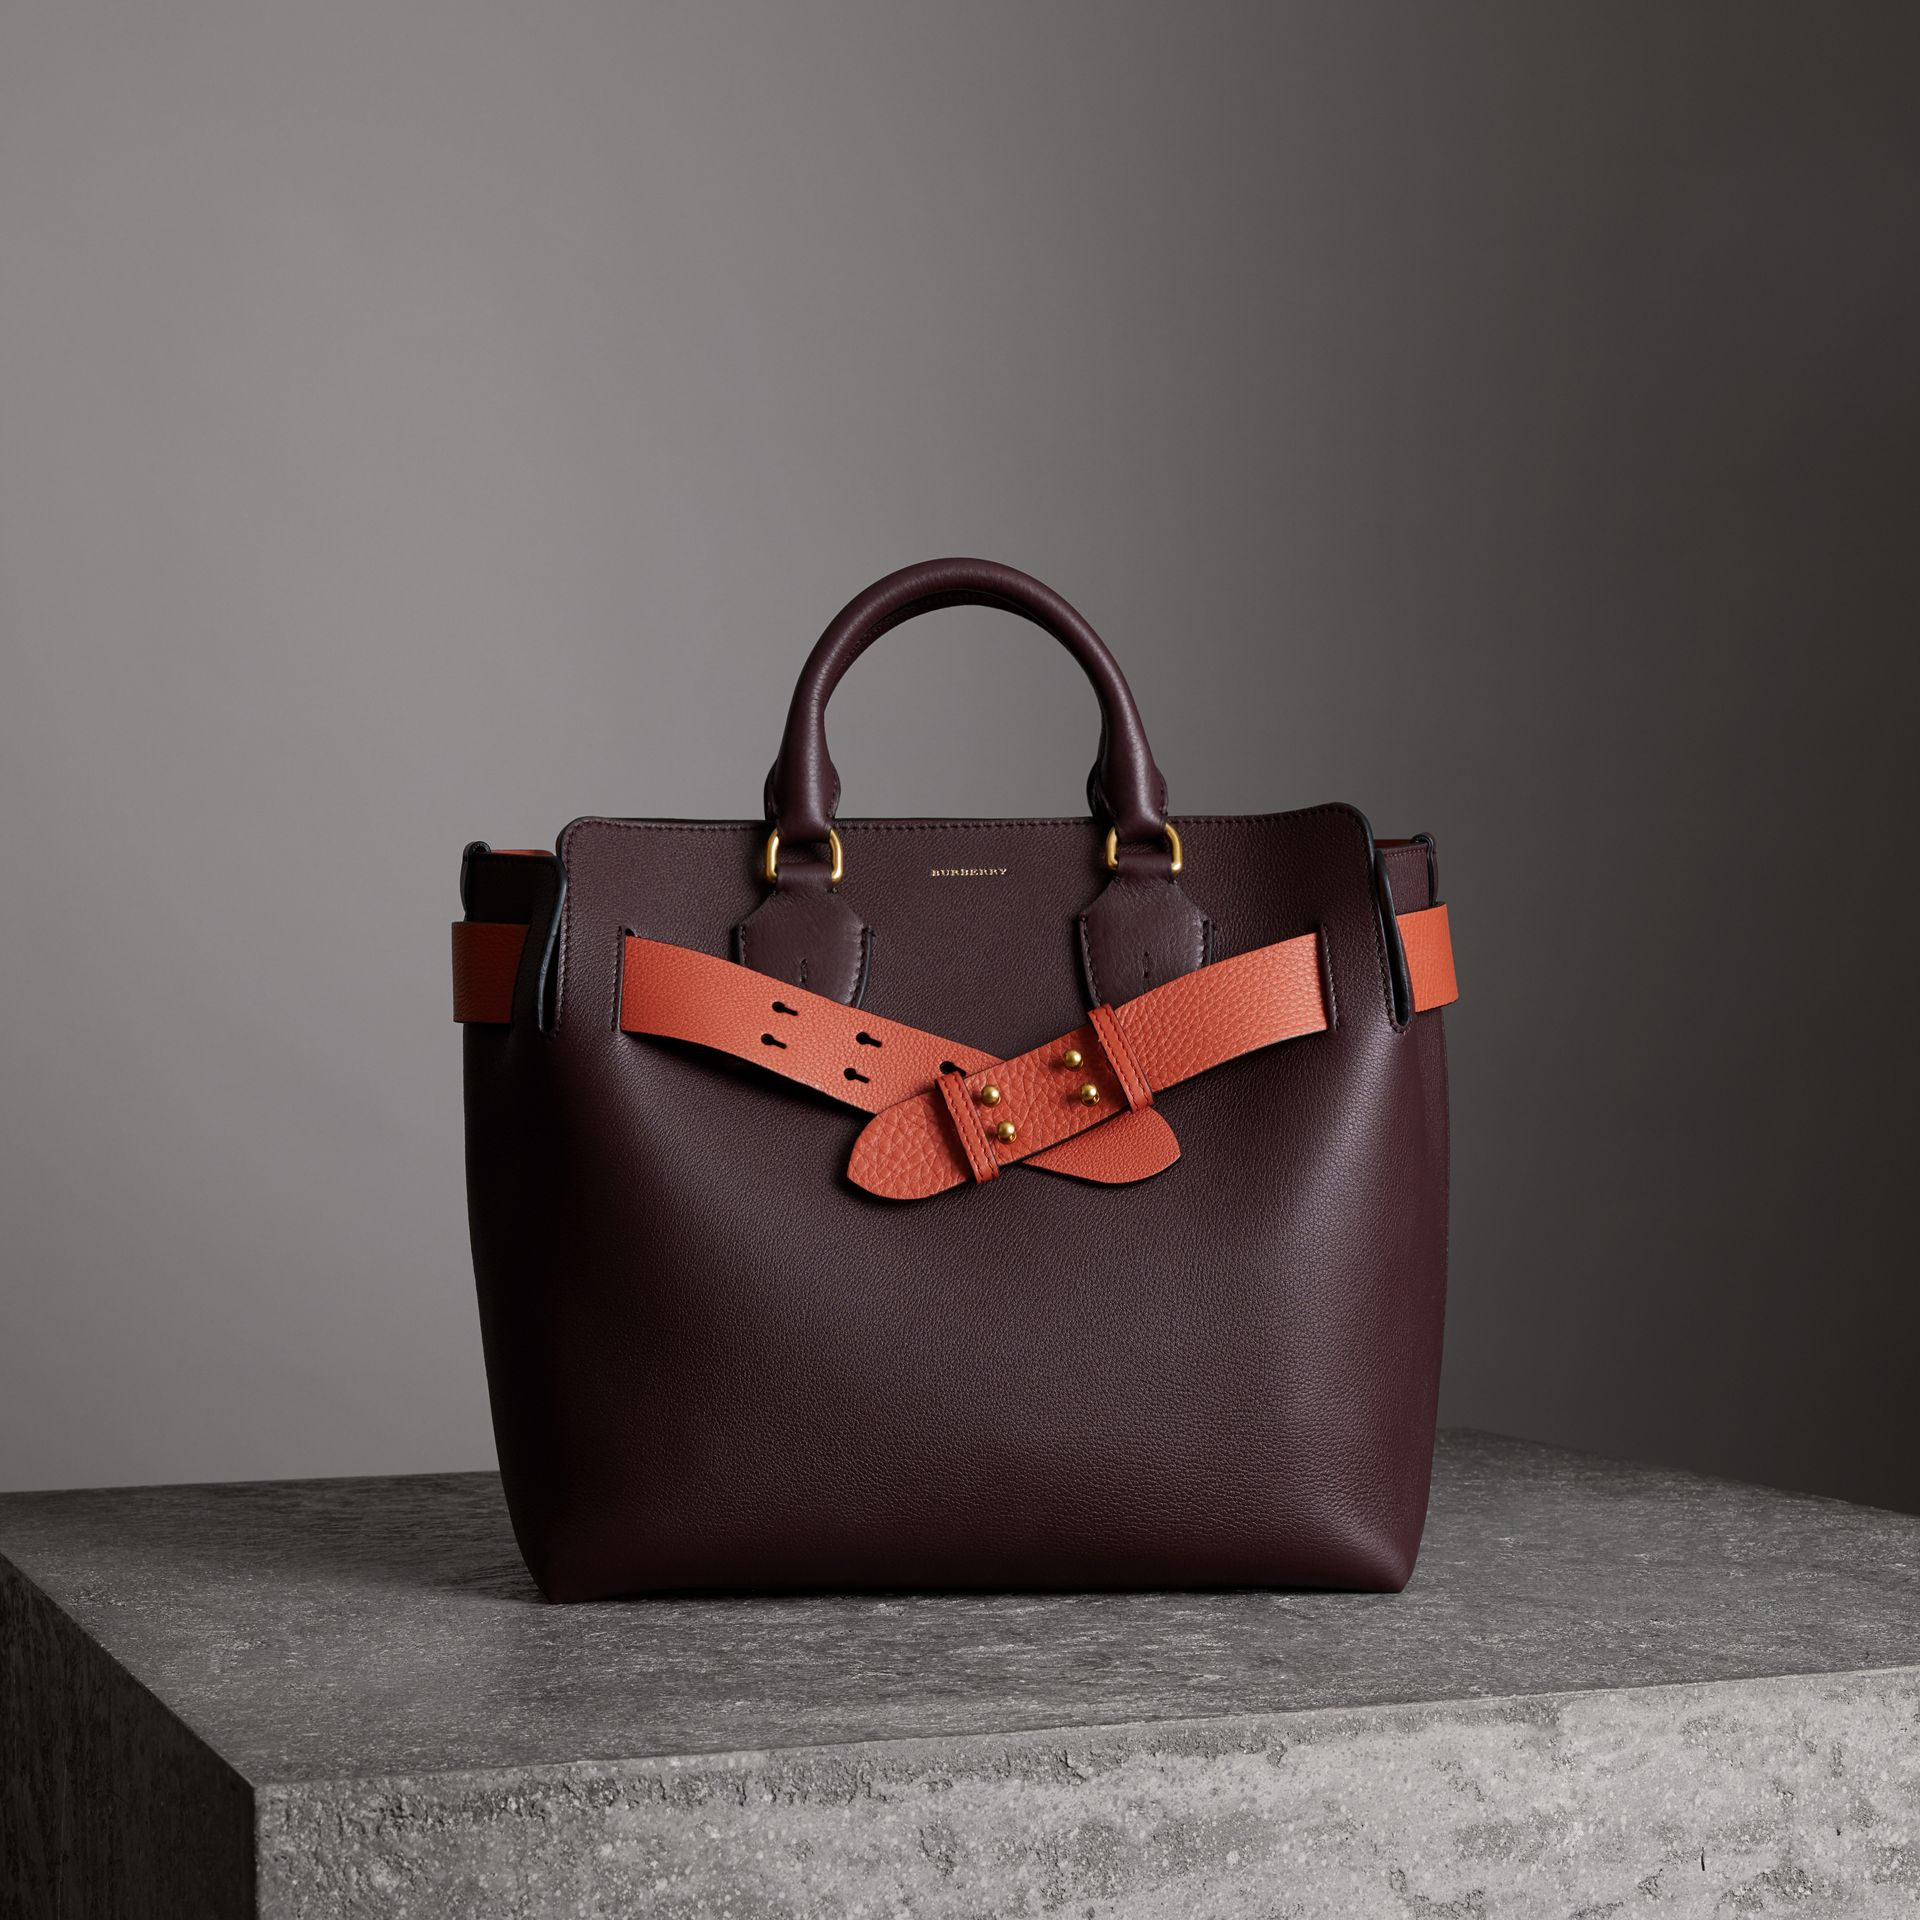 Sac The Belt moyen en cuir (Bordeaux Intense) - Femme | Burberry - photo de la galerie 0